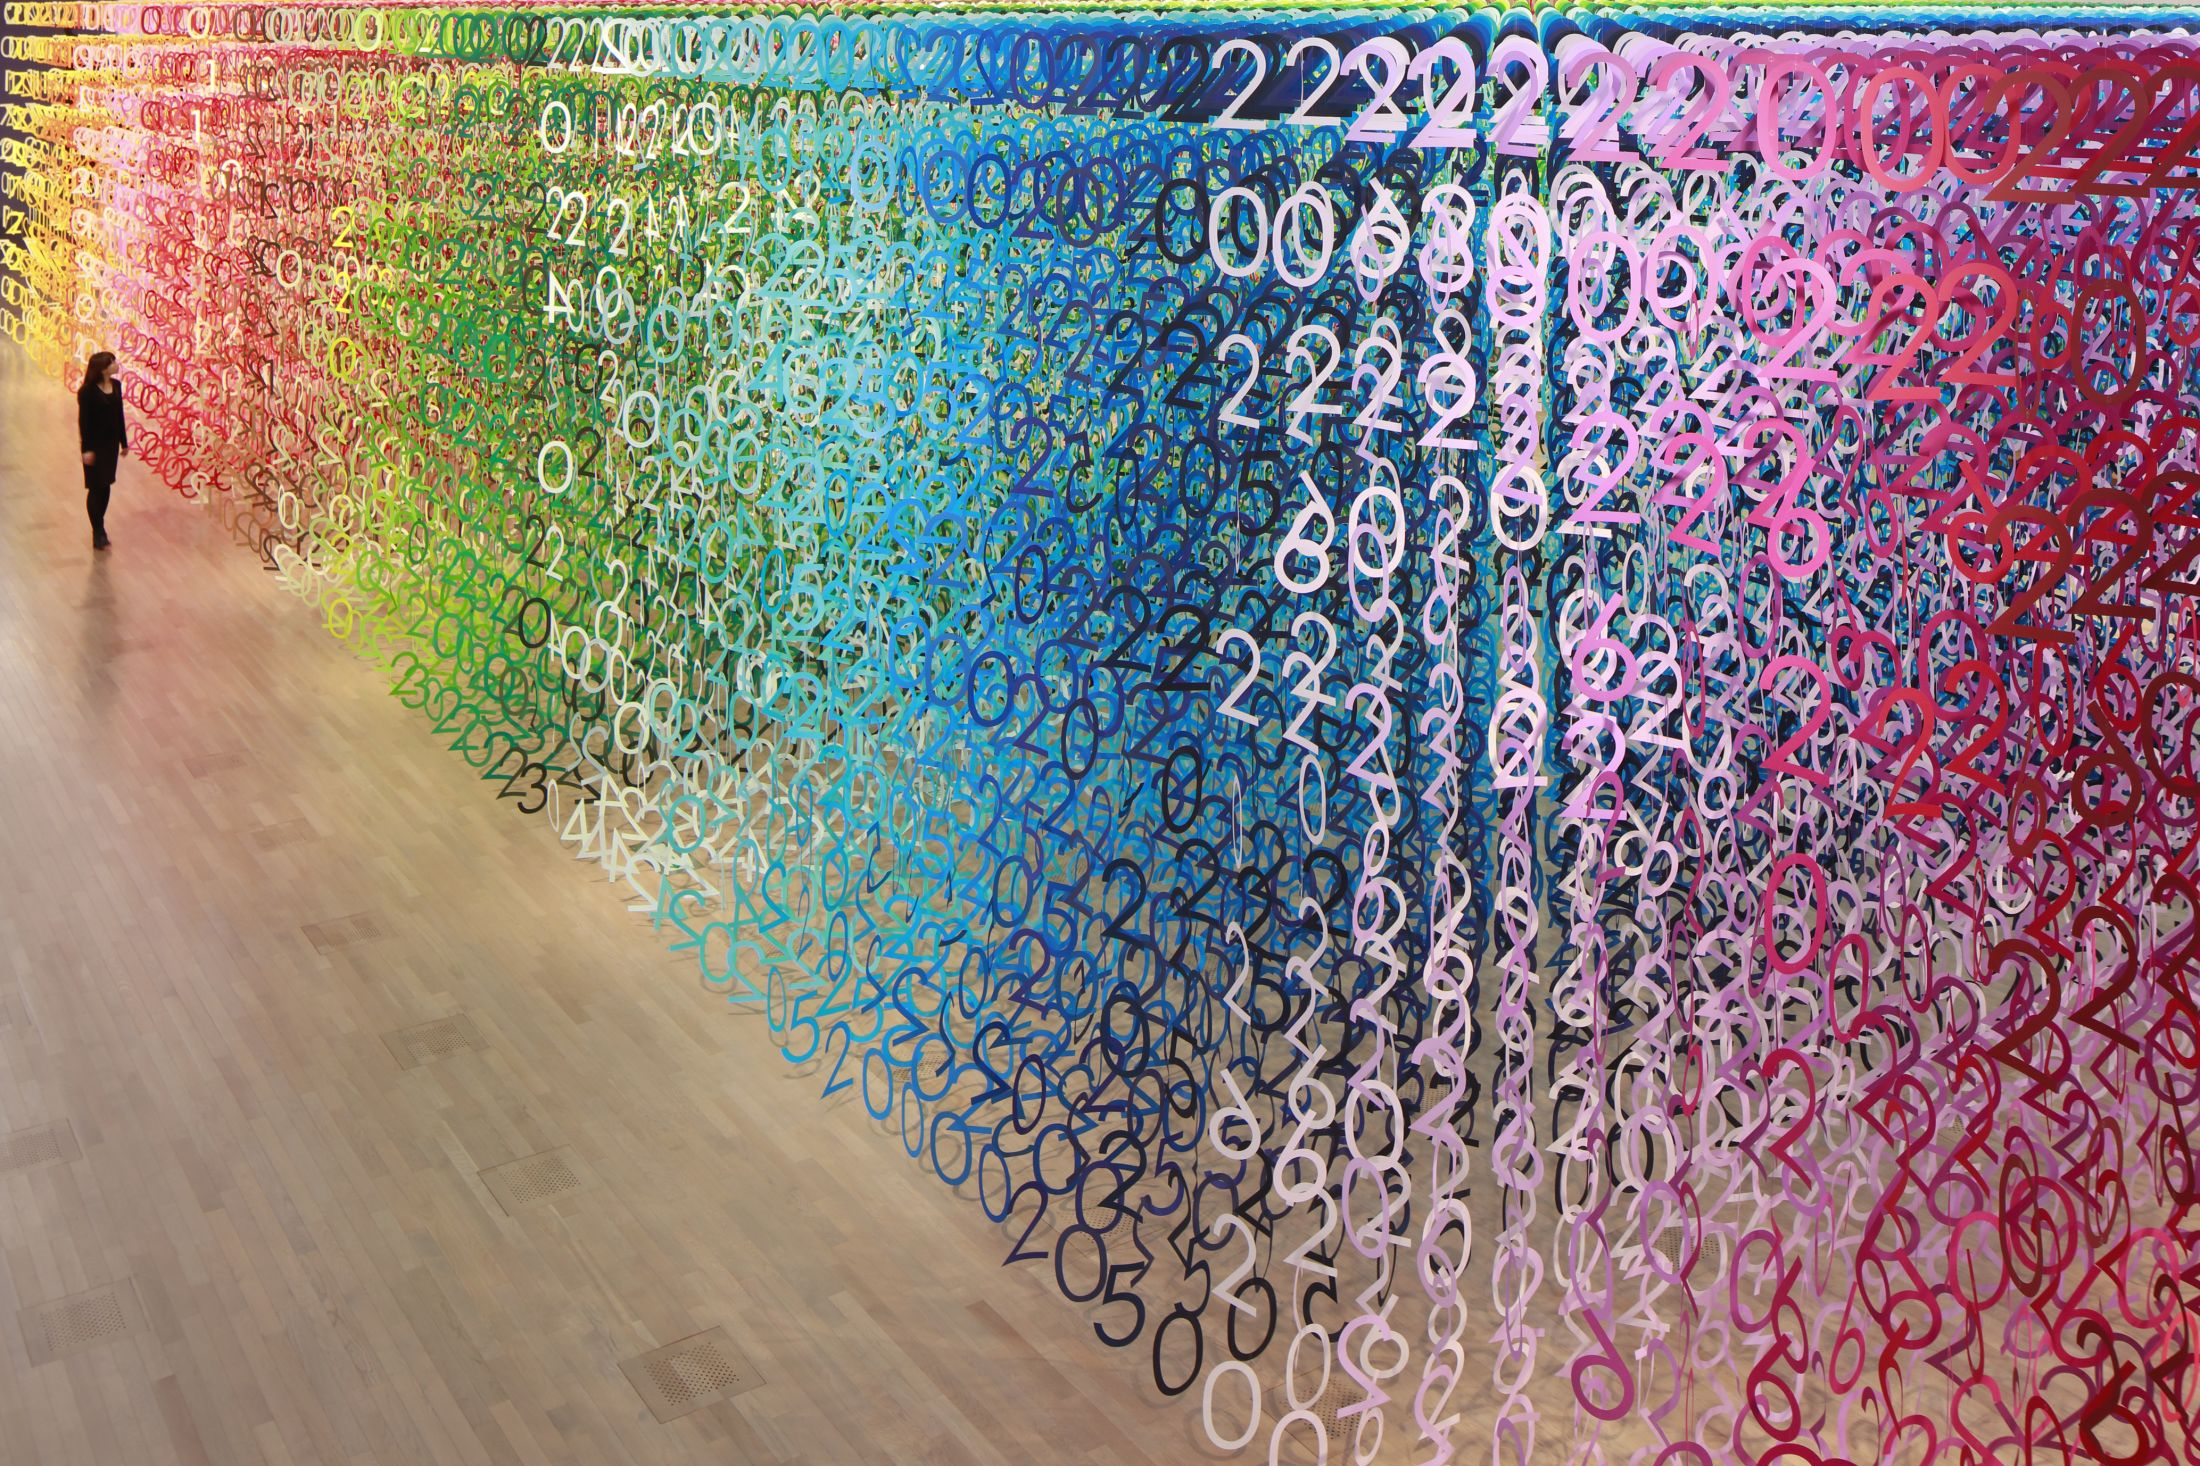 Slices of Time: Emmanuelle Moureaux to bring her next interactive, rainbow-coloured artwork to London